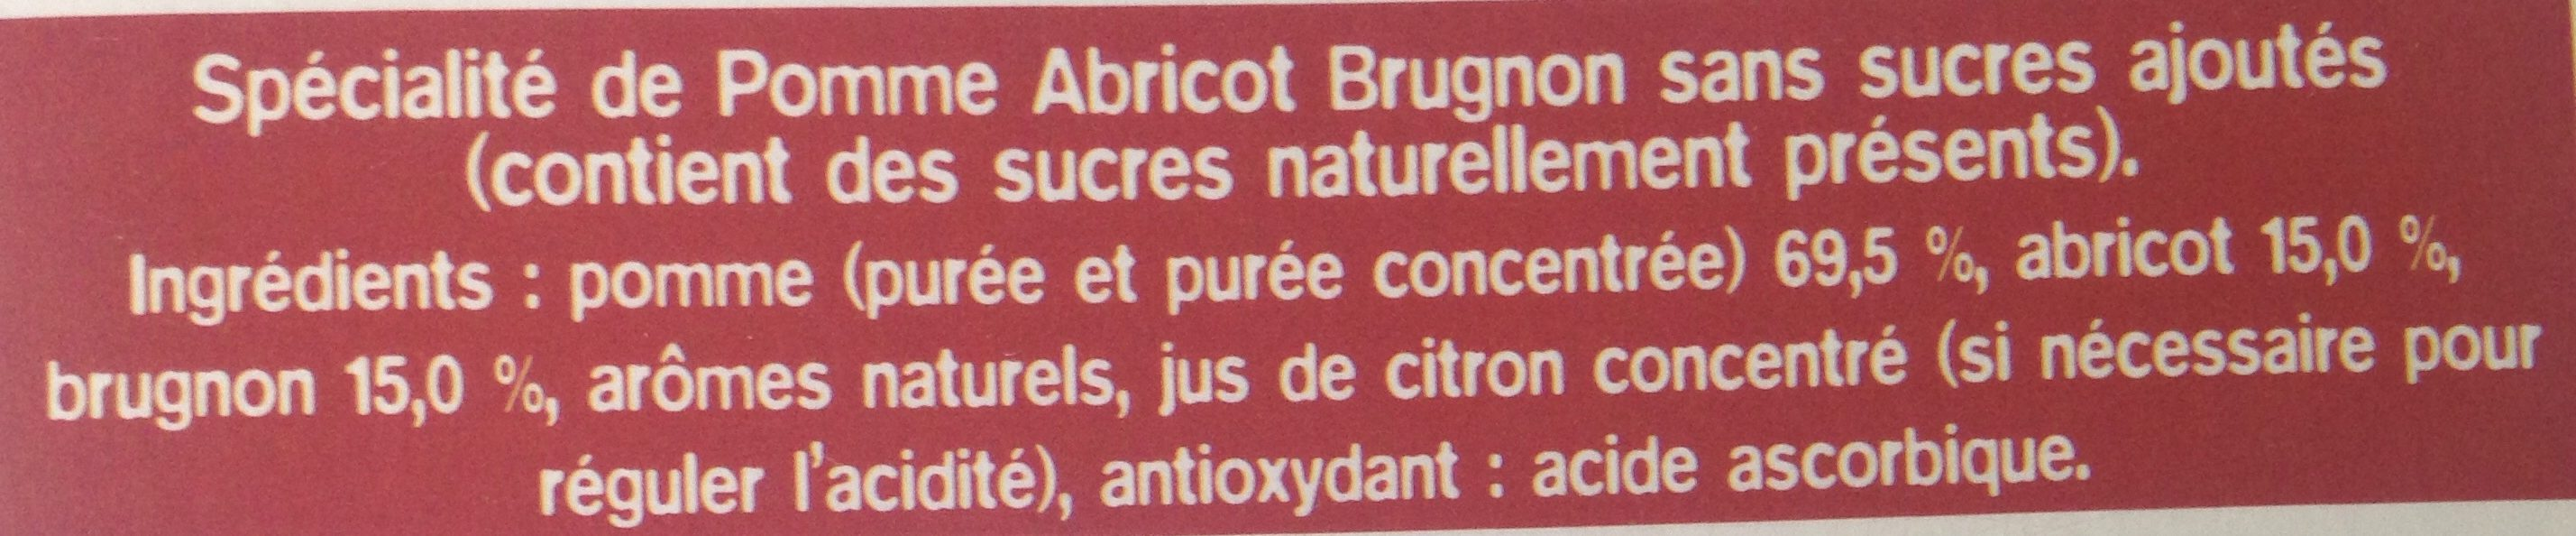 Ma Pause Fruit Pomme Abricot Brugnon - Ingredients